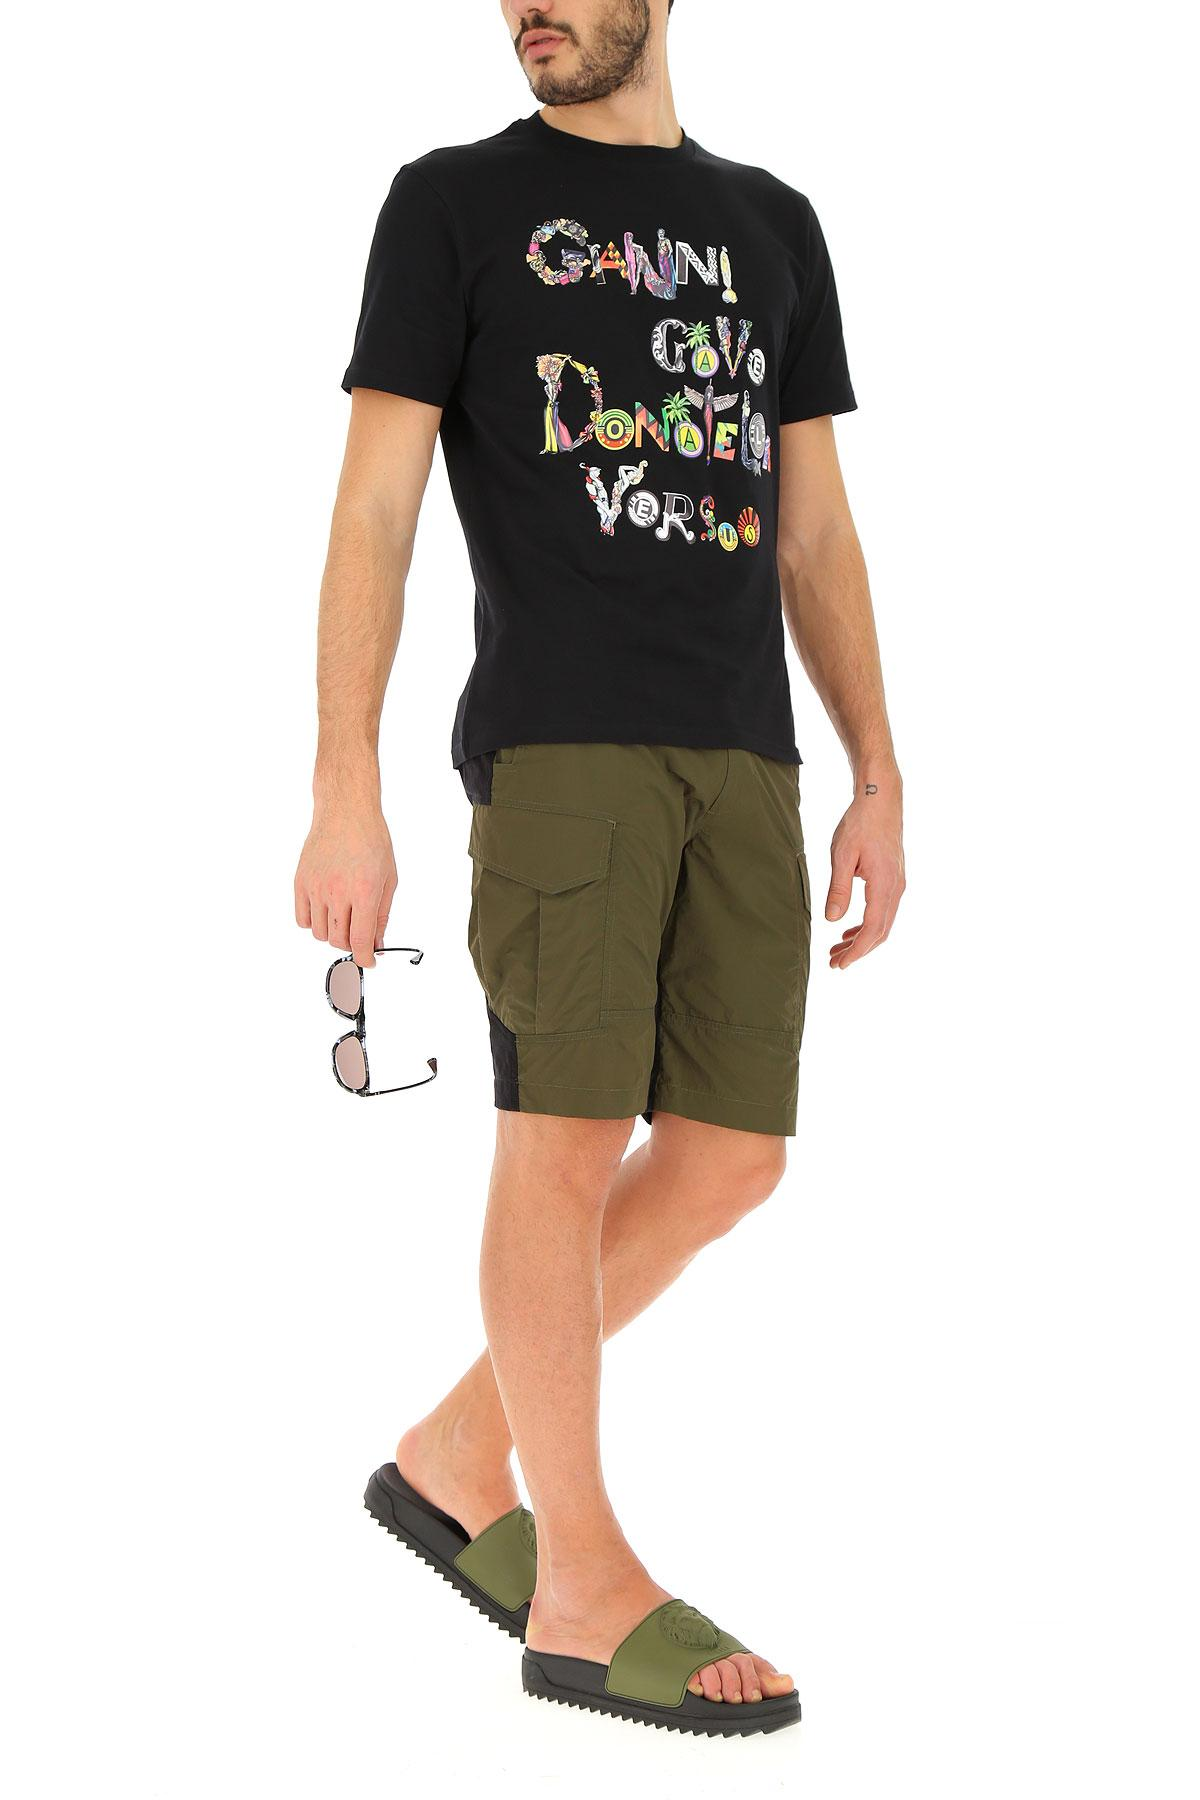 996c373be2 Versace Clothing For Men in Green for Men - Lyst